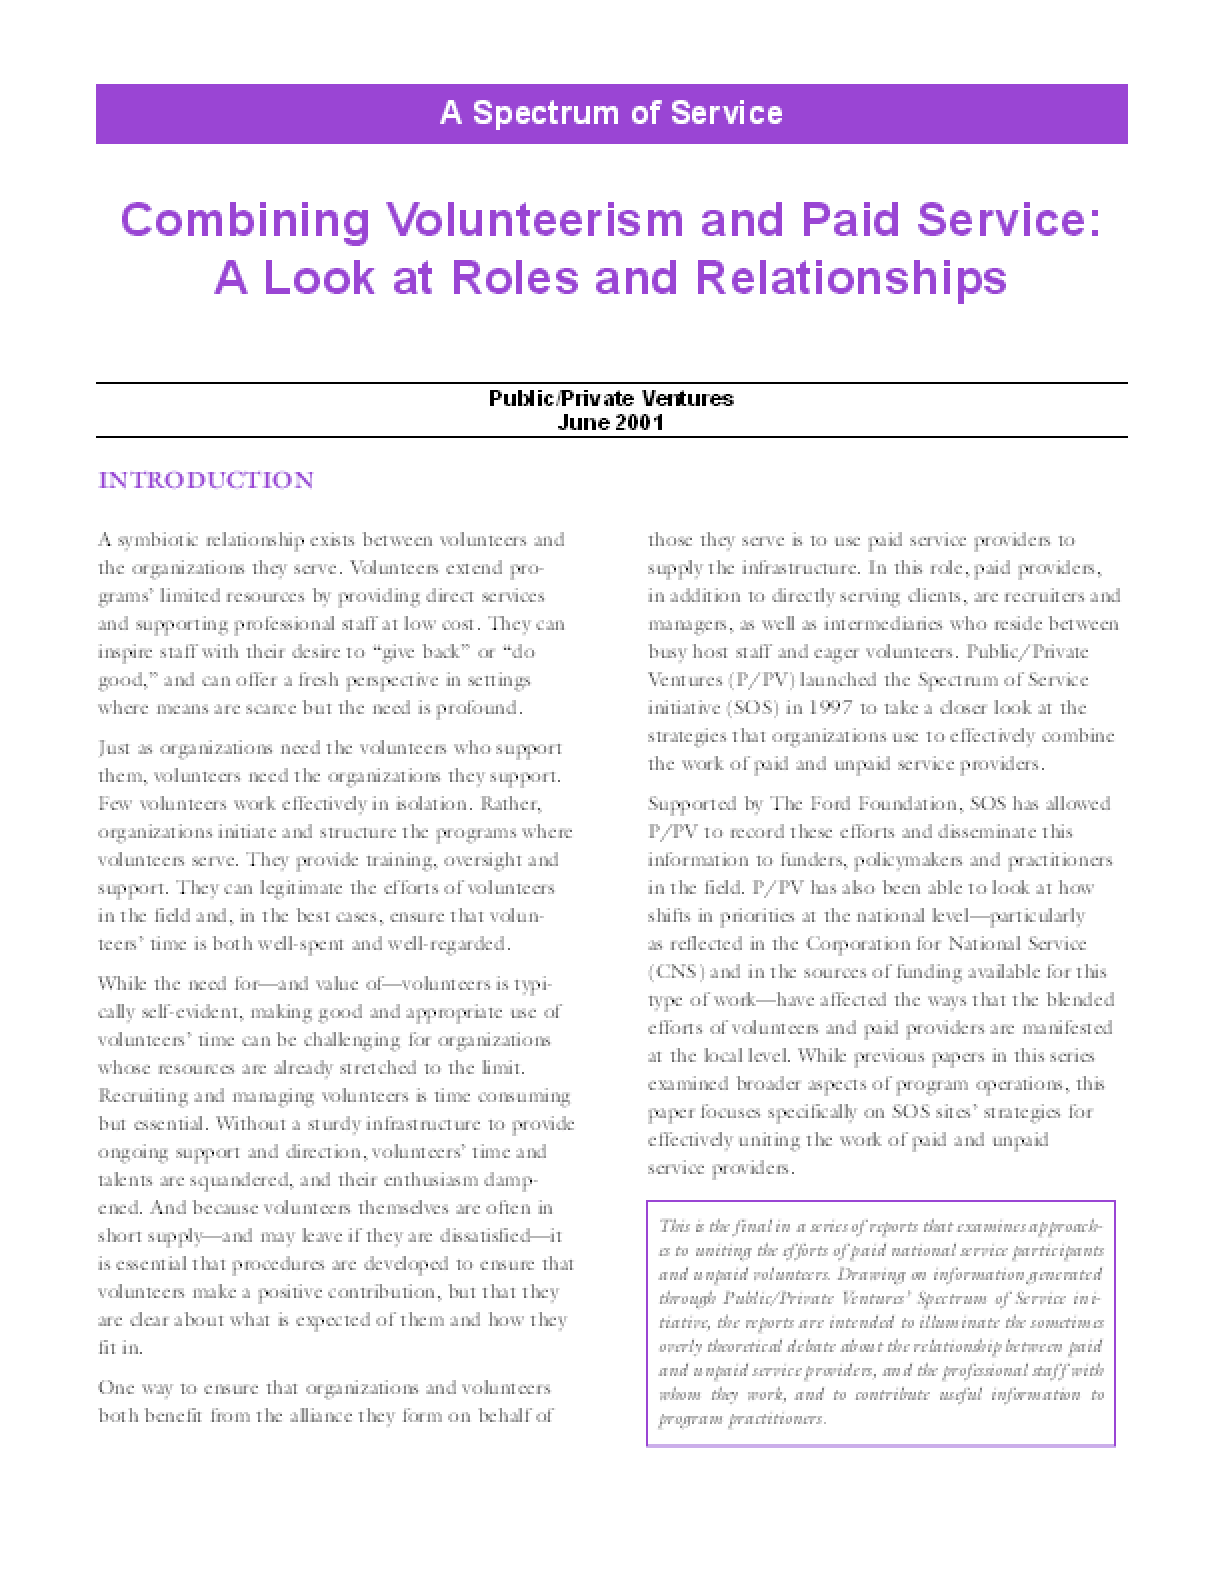 A Spectrum of Service: Combining Volunteerism and Paid Service: A Look at Roles and Relationships